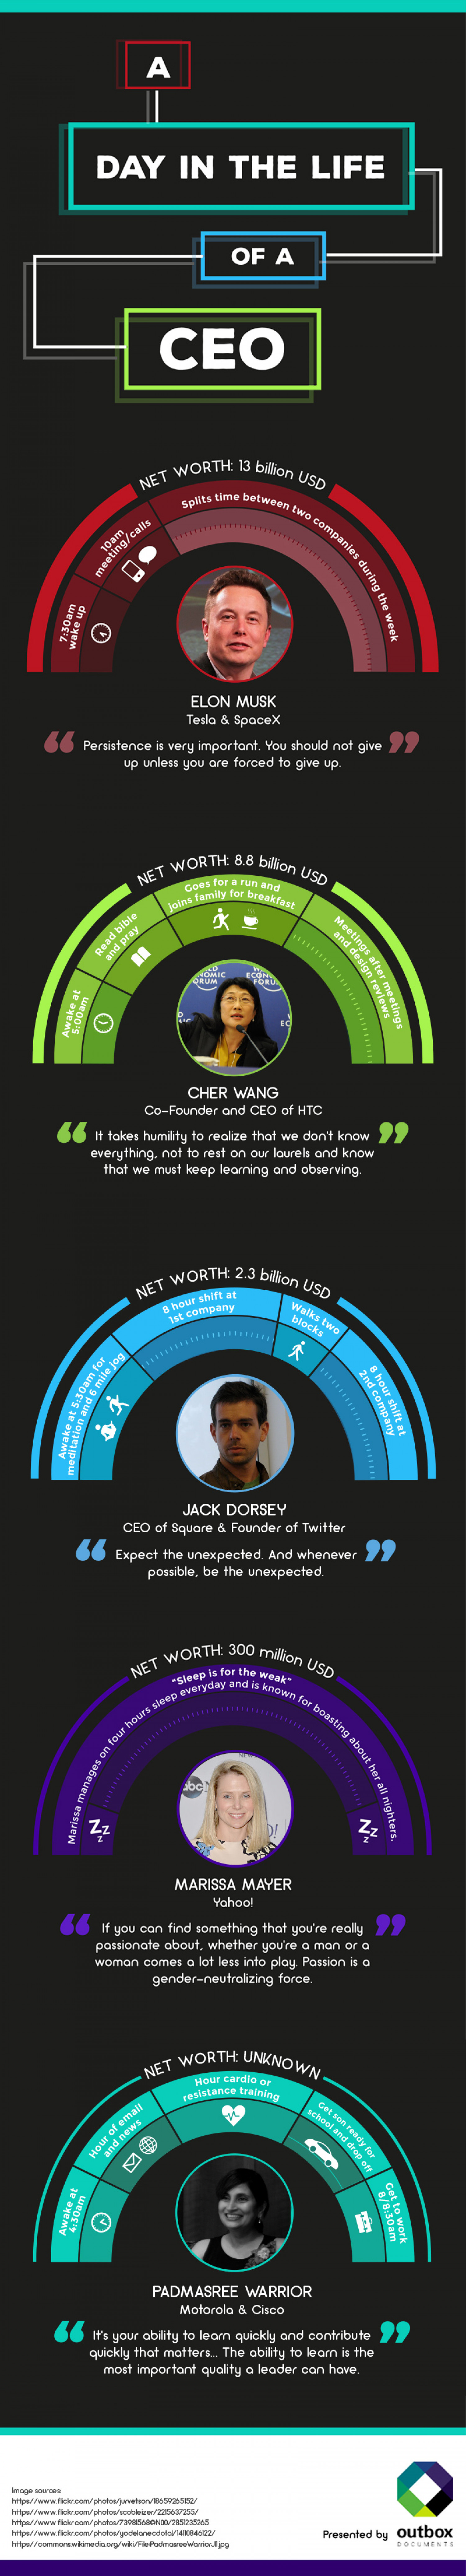 The Daily Routine of CEOs Infographic